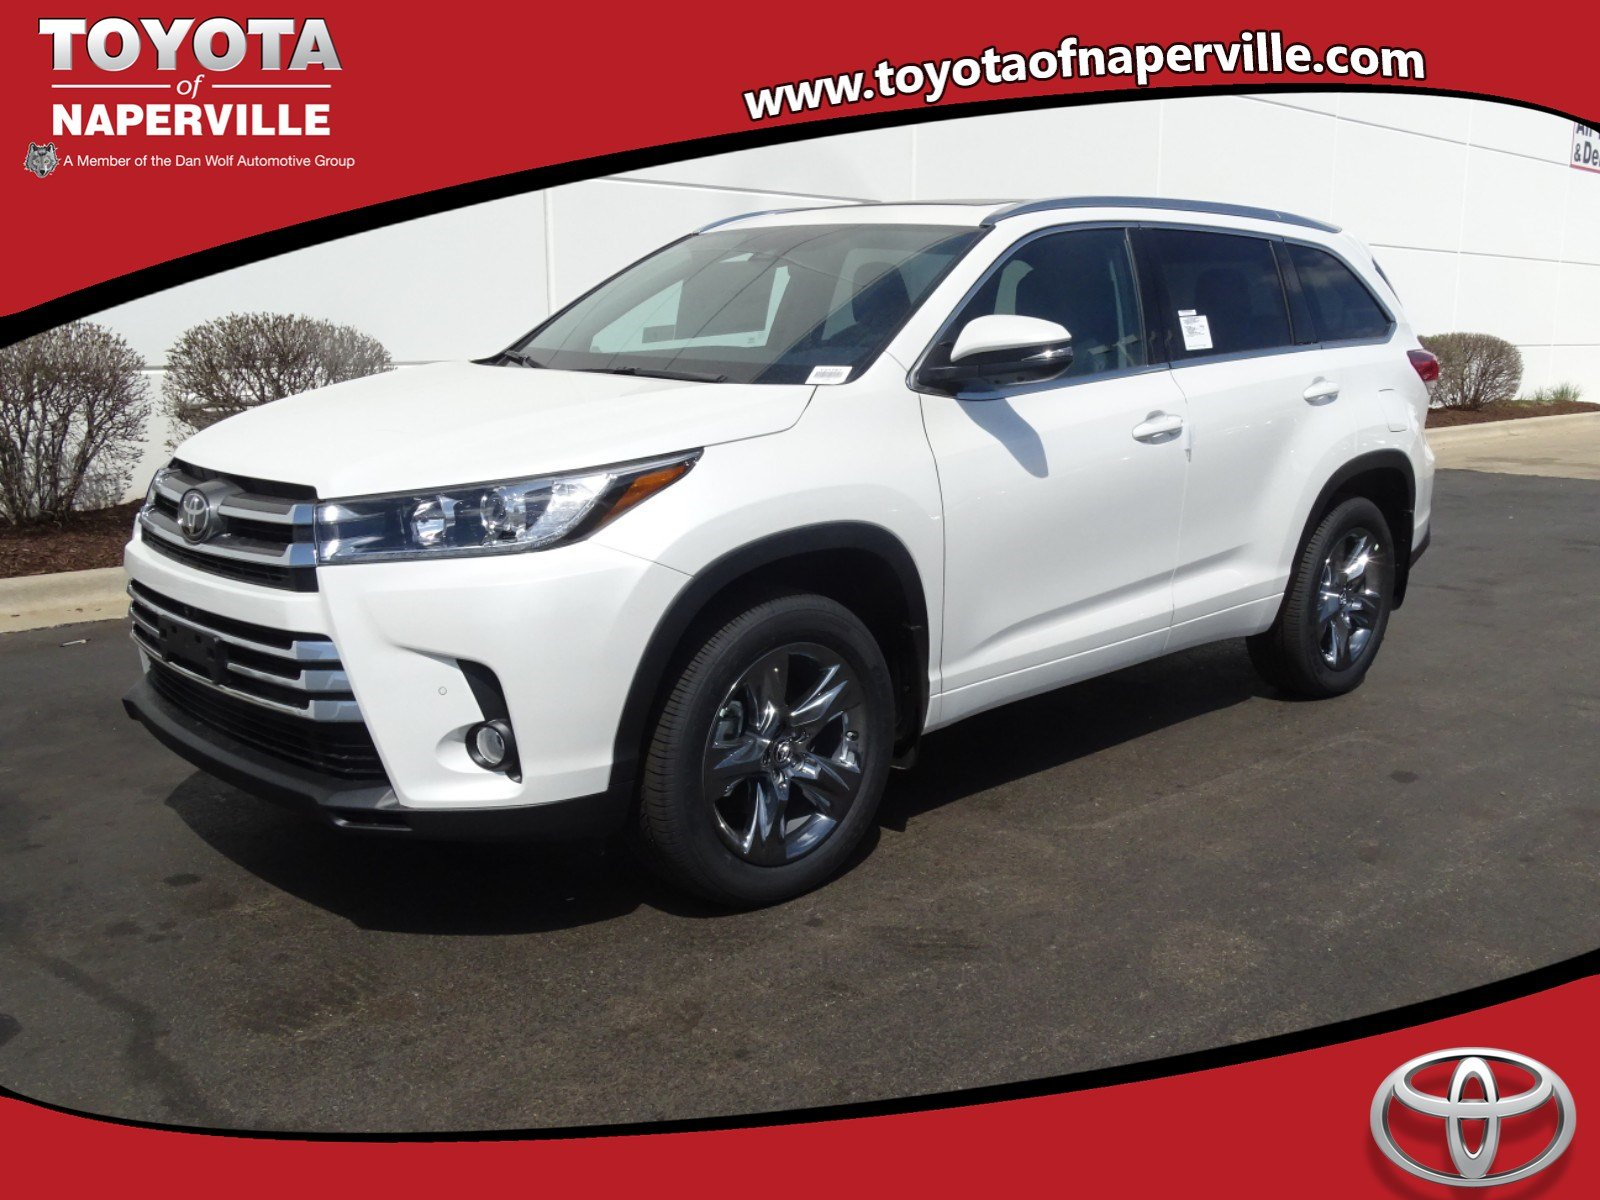 Toyota Highlander Owners Manual: For safety drive